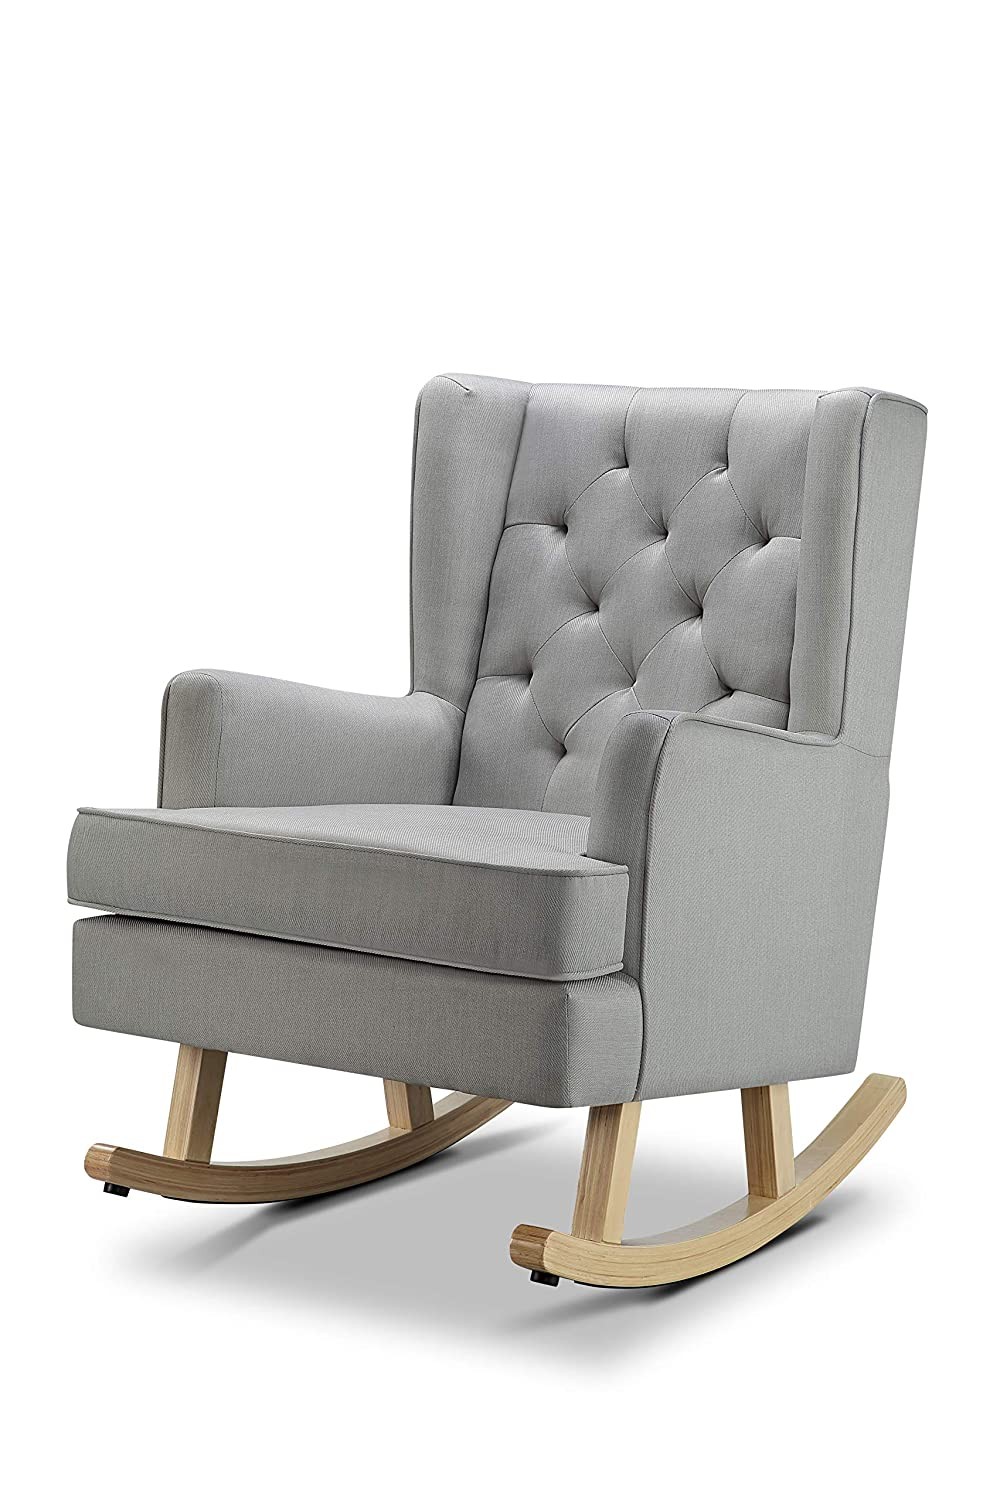 Babylo Nested Soothe Easy Nursing Maternity and Rocking Chair